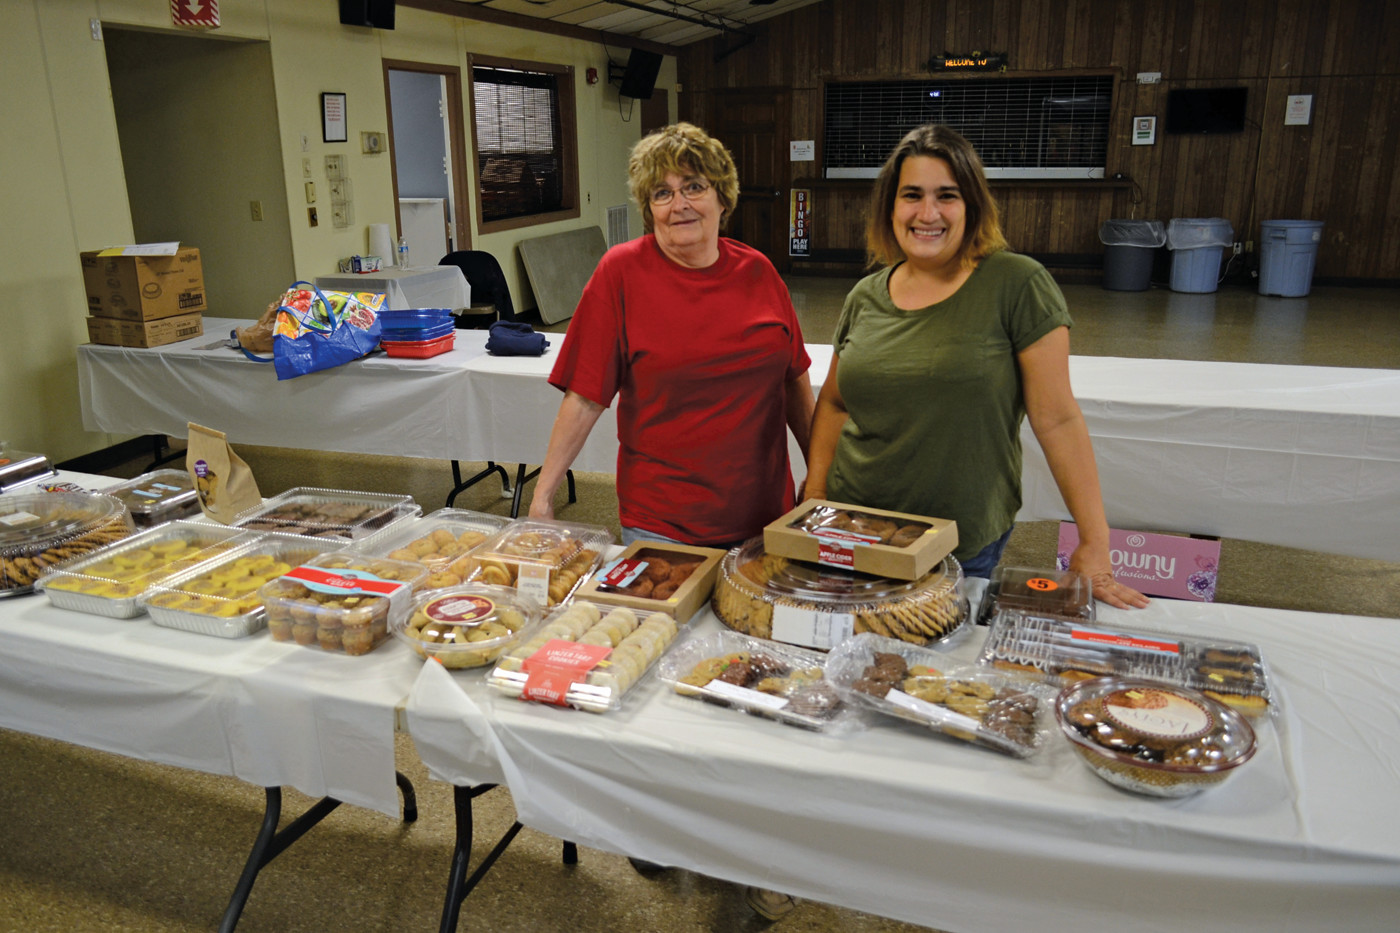 MAKING A DIFFERENCE: Gwen Maccarone (right) and her mother, Gloria Zeoli, were at the Shields Post on West Shore Road manning the donations of various sweet treats for first responders on Monday afternoon.